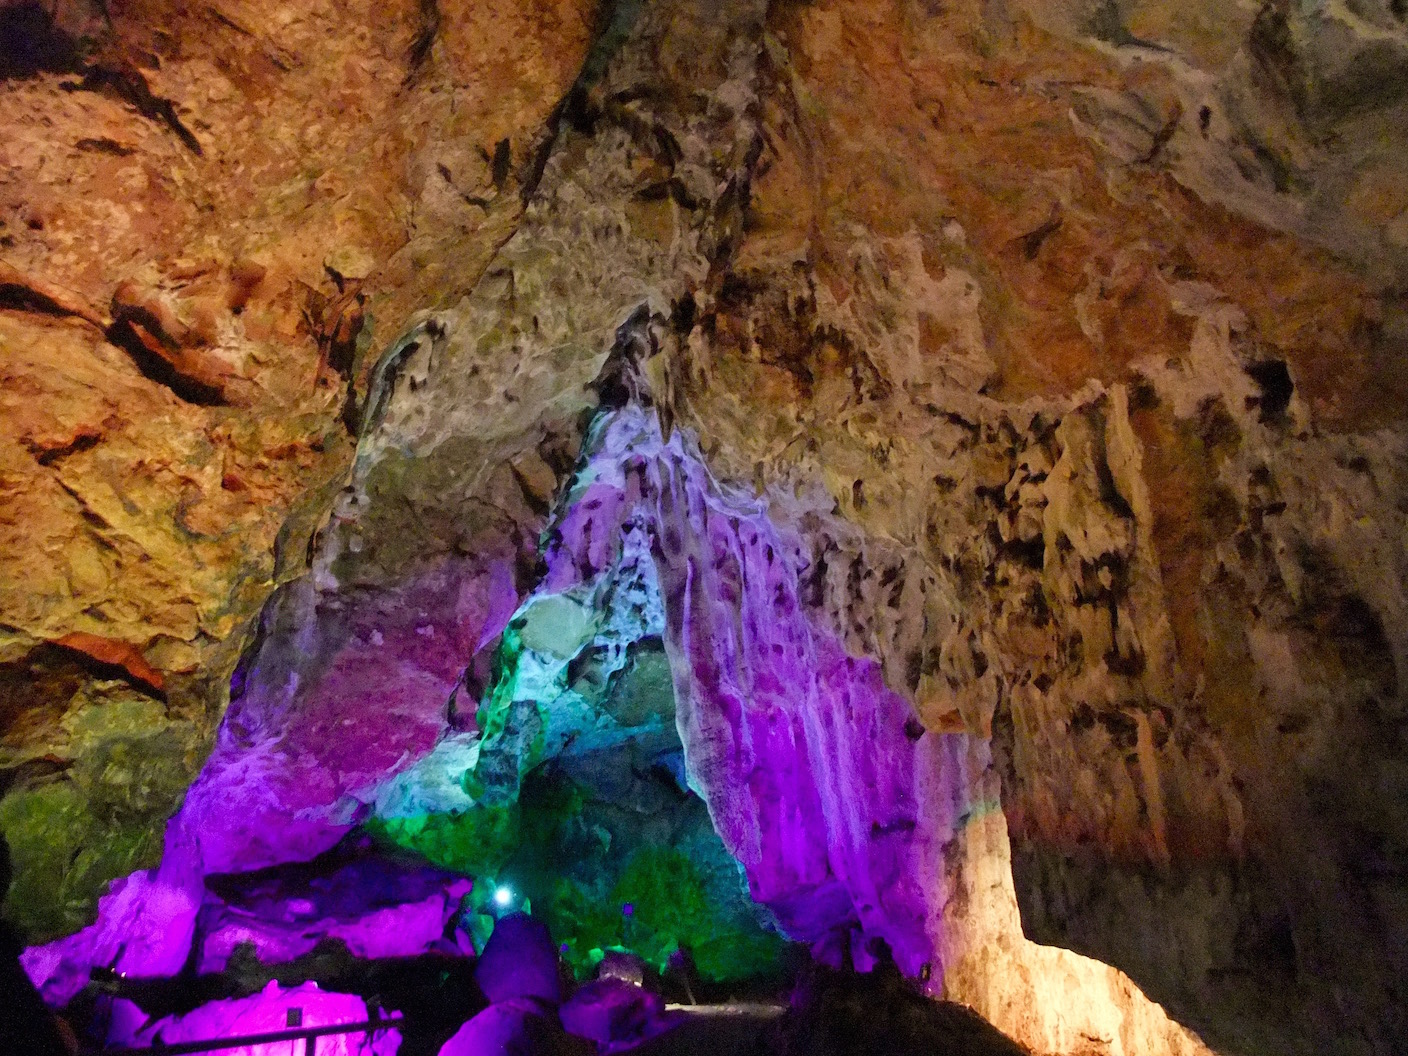 One of my many pictures of the changing lights in the   Nebelhöhle  caverns